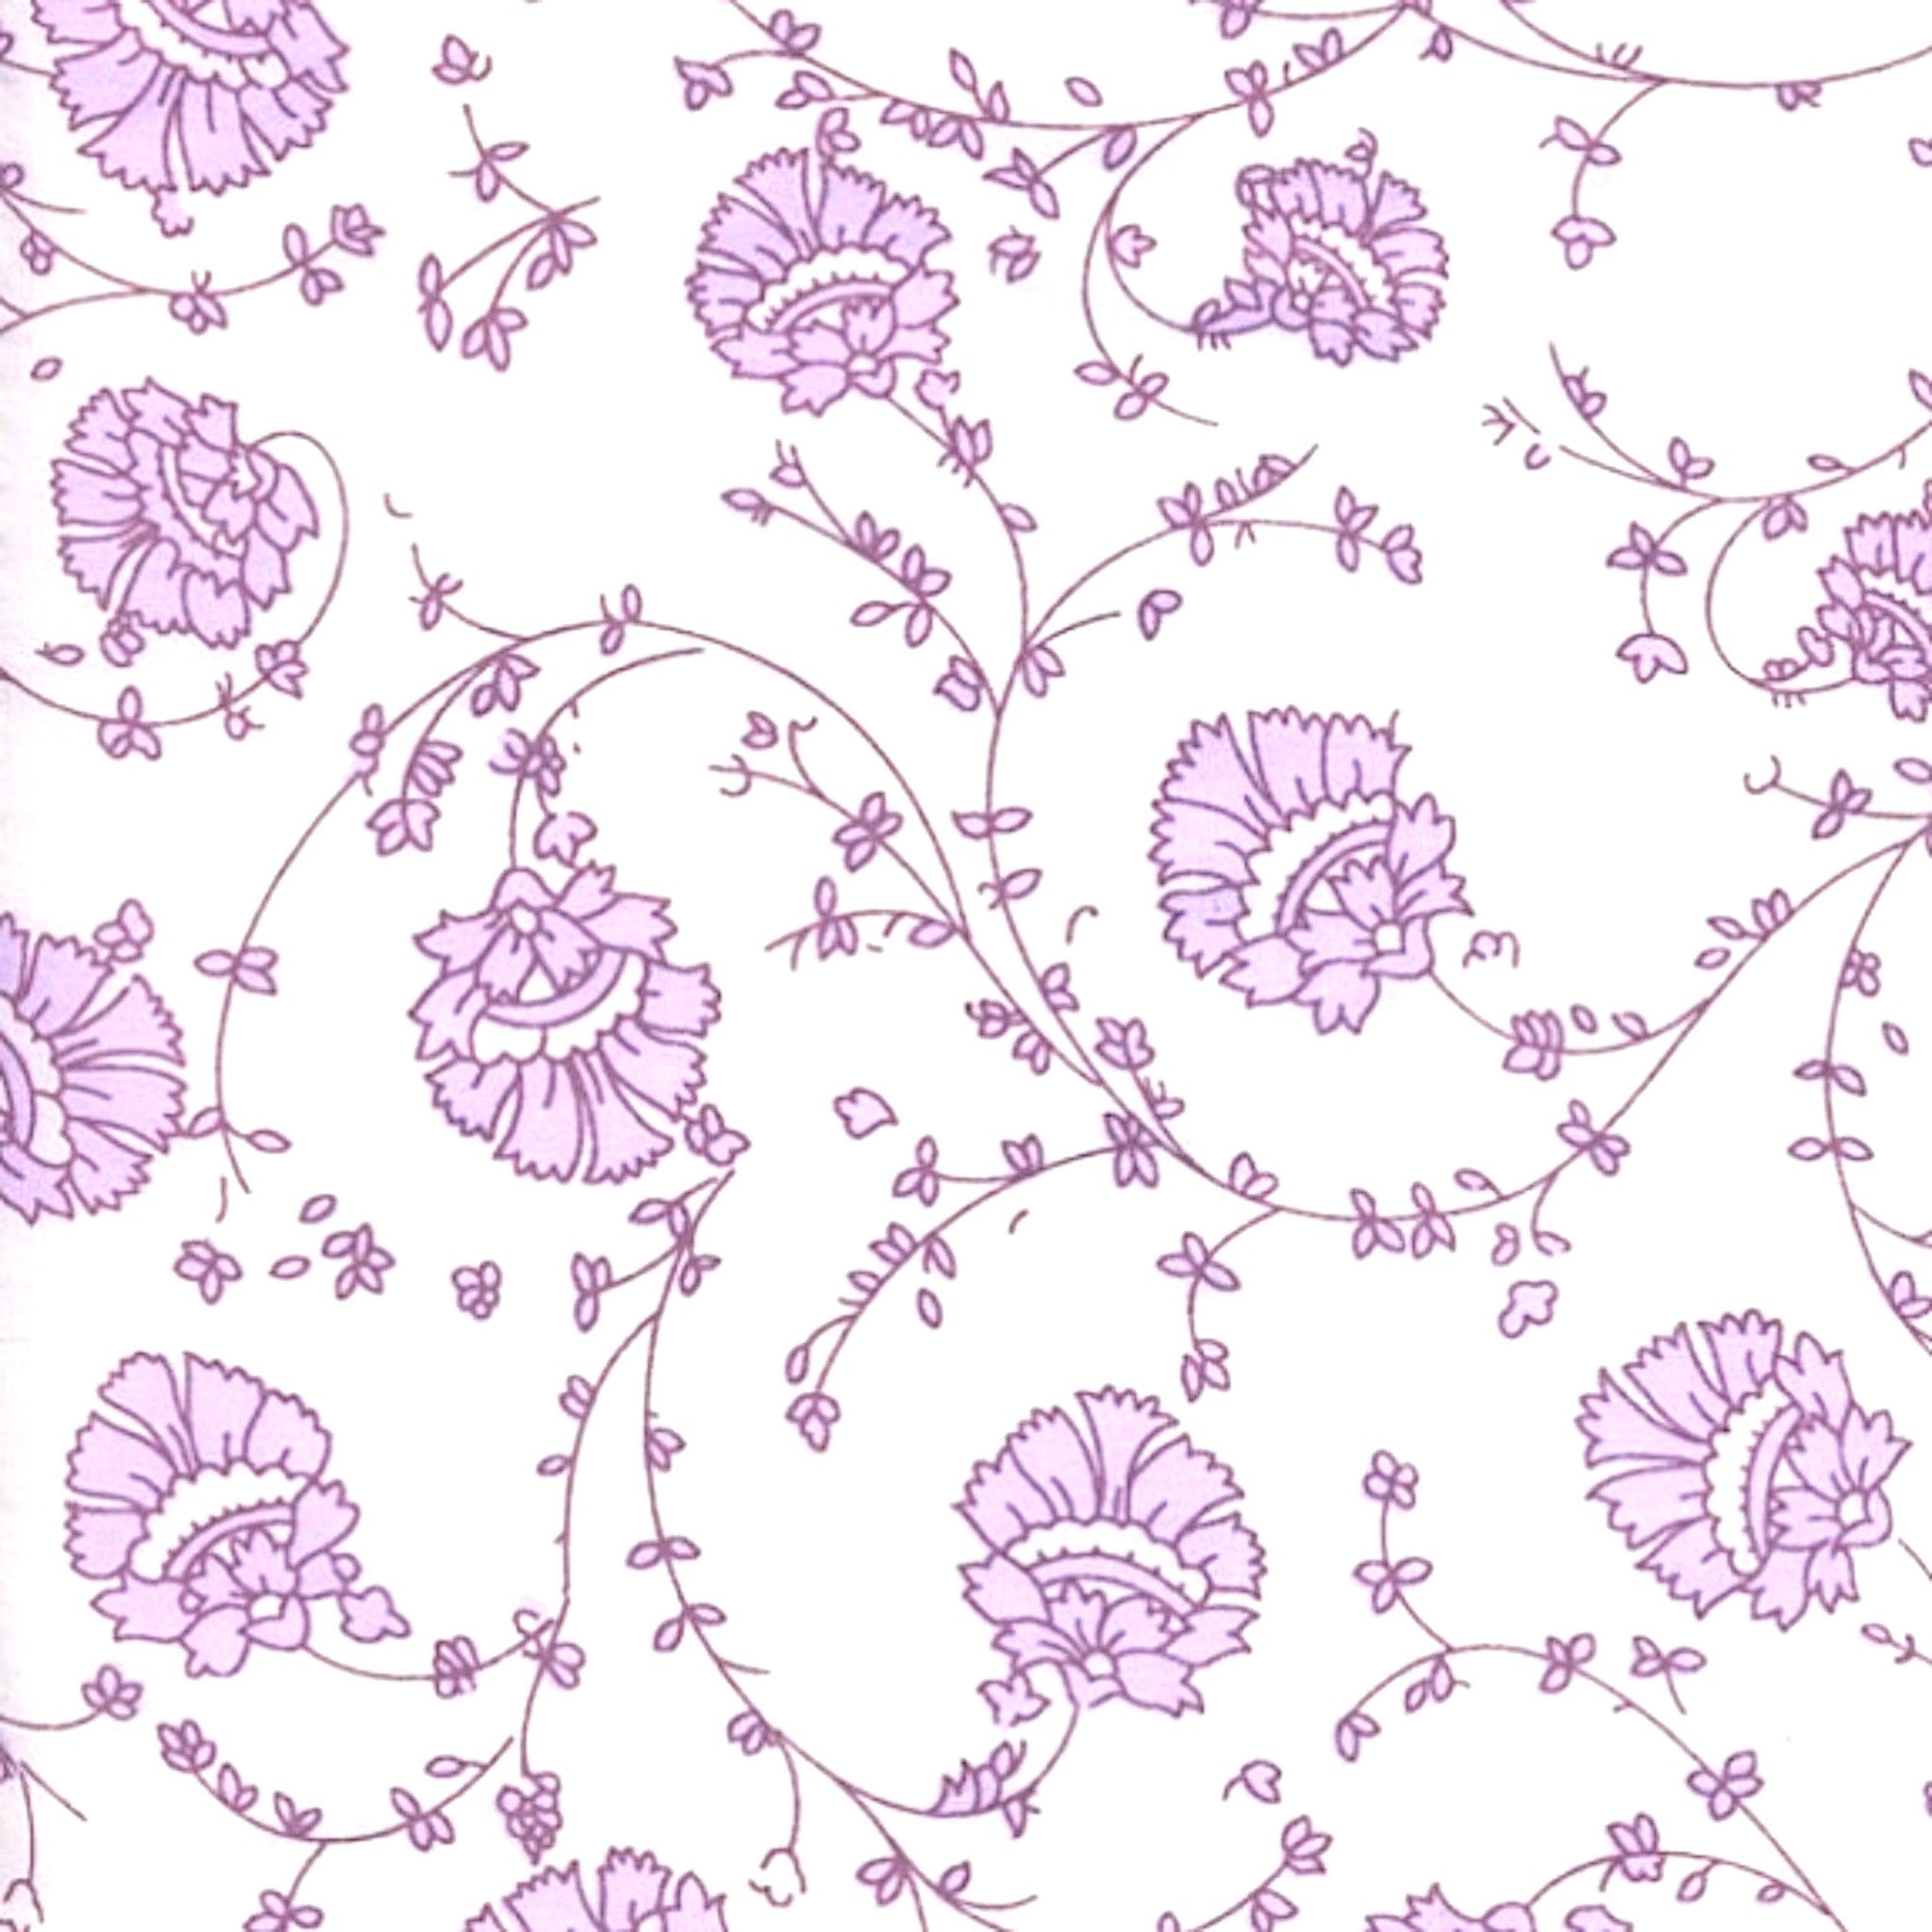 Cotton Percale - Lilac Arpege Fabric